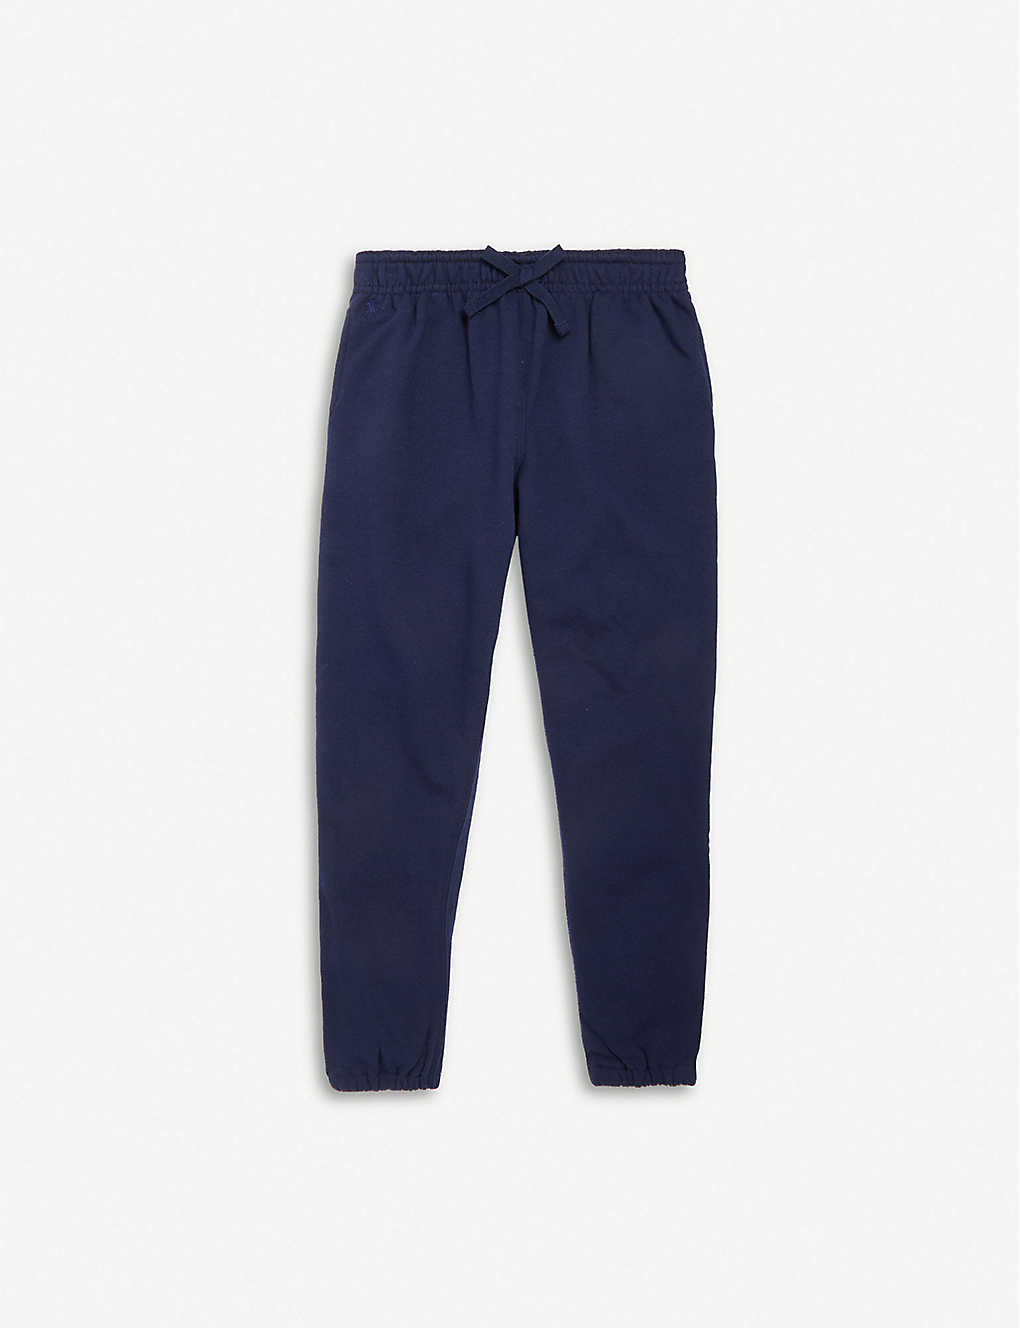 RALPH LAUREN: Side-striped cotton jogger trousers 2-5 years